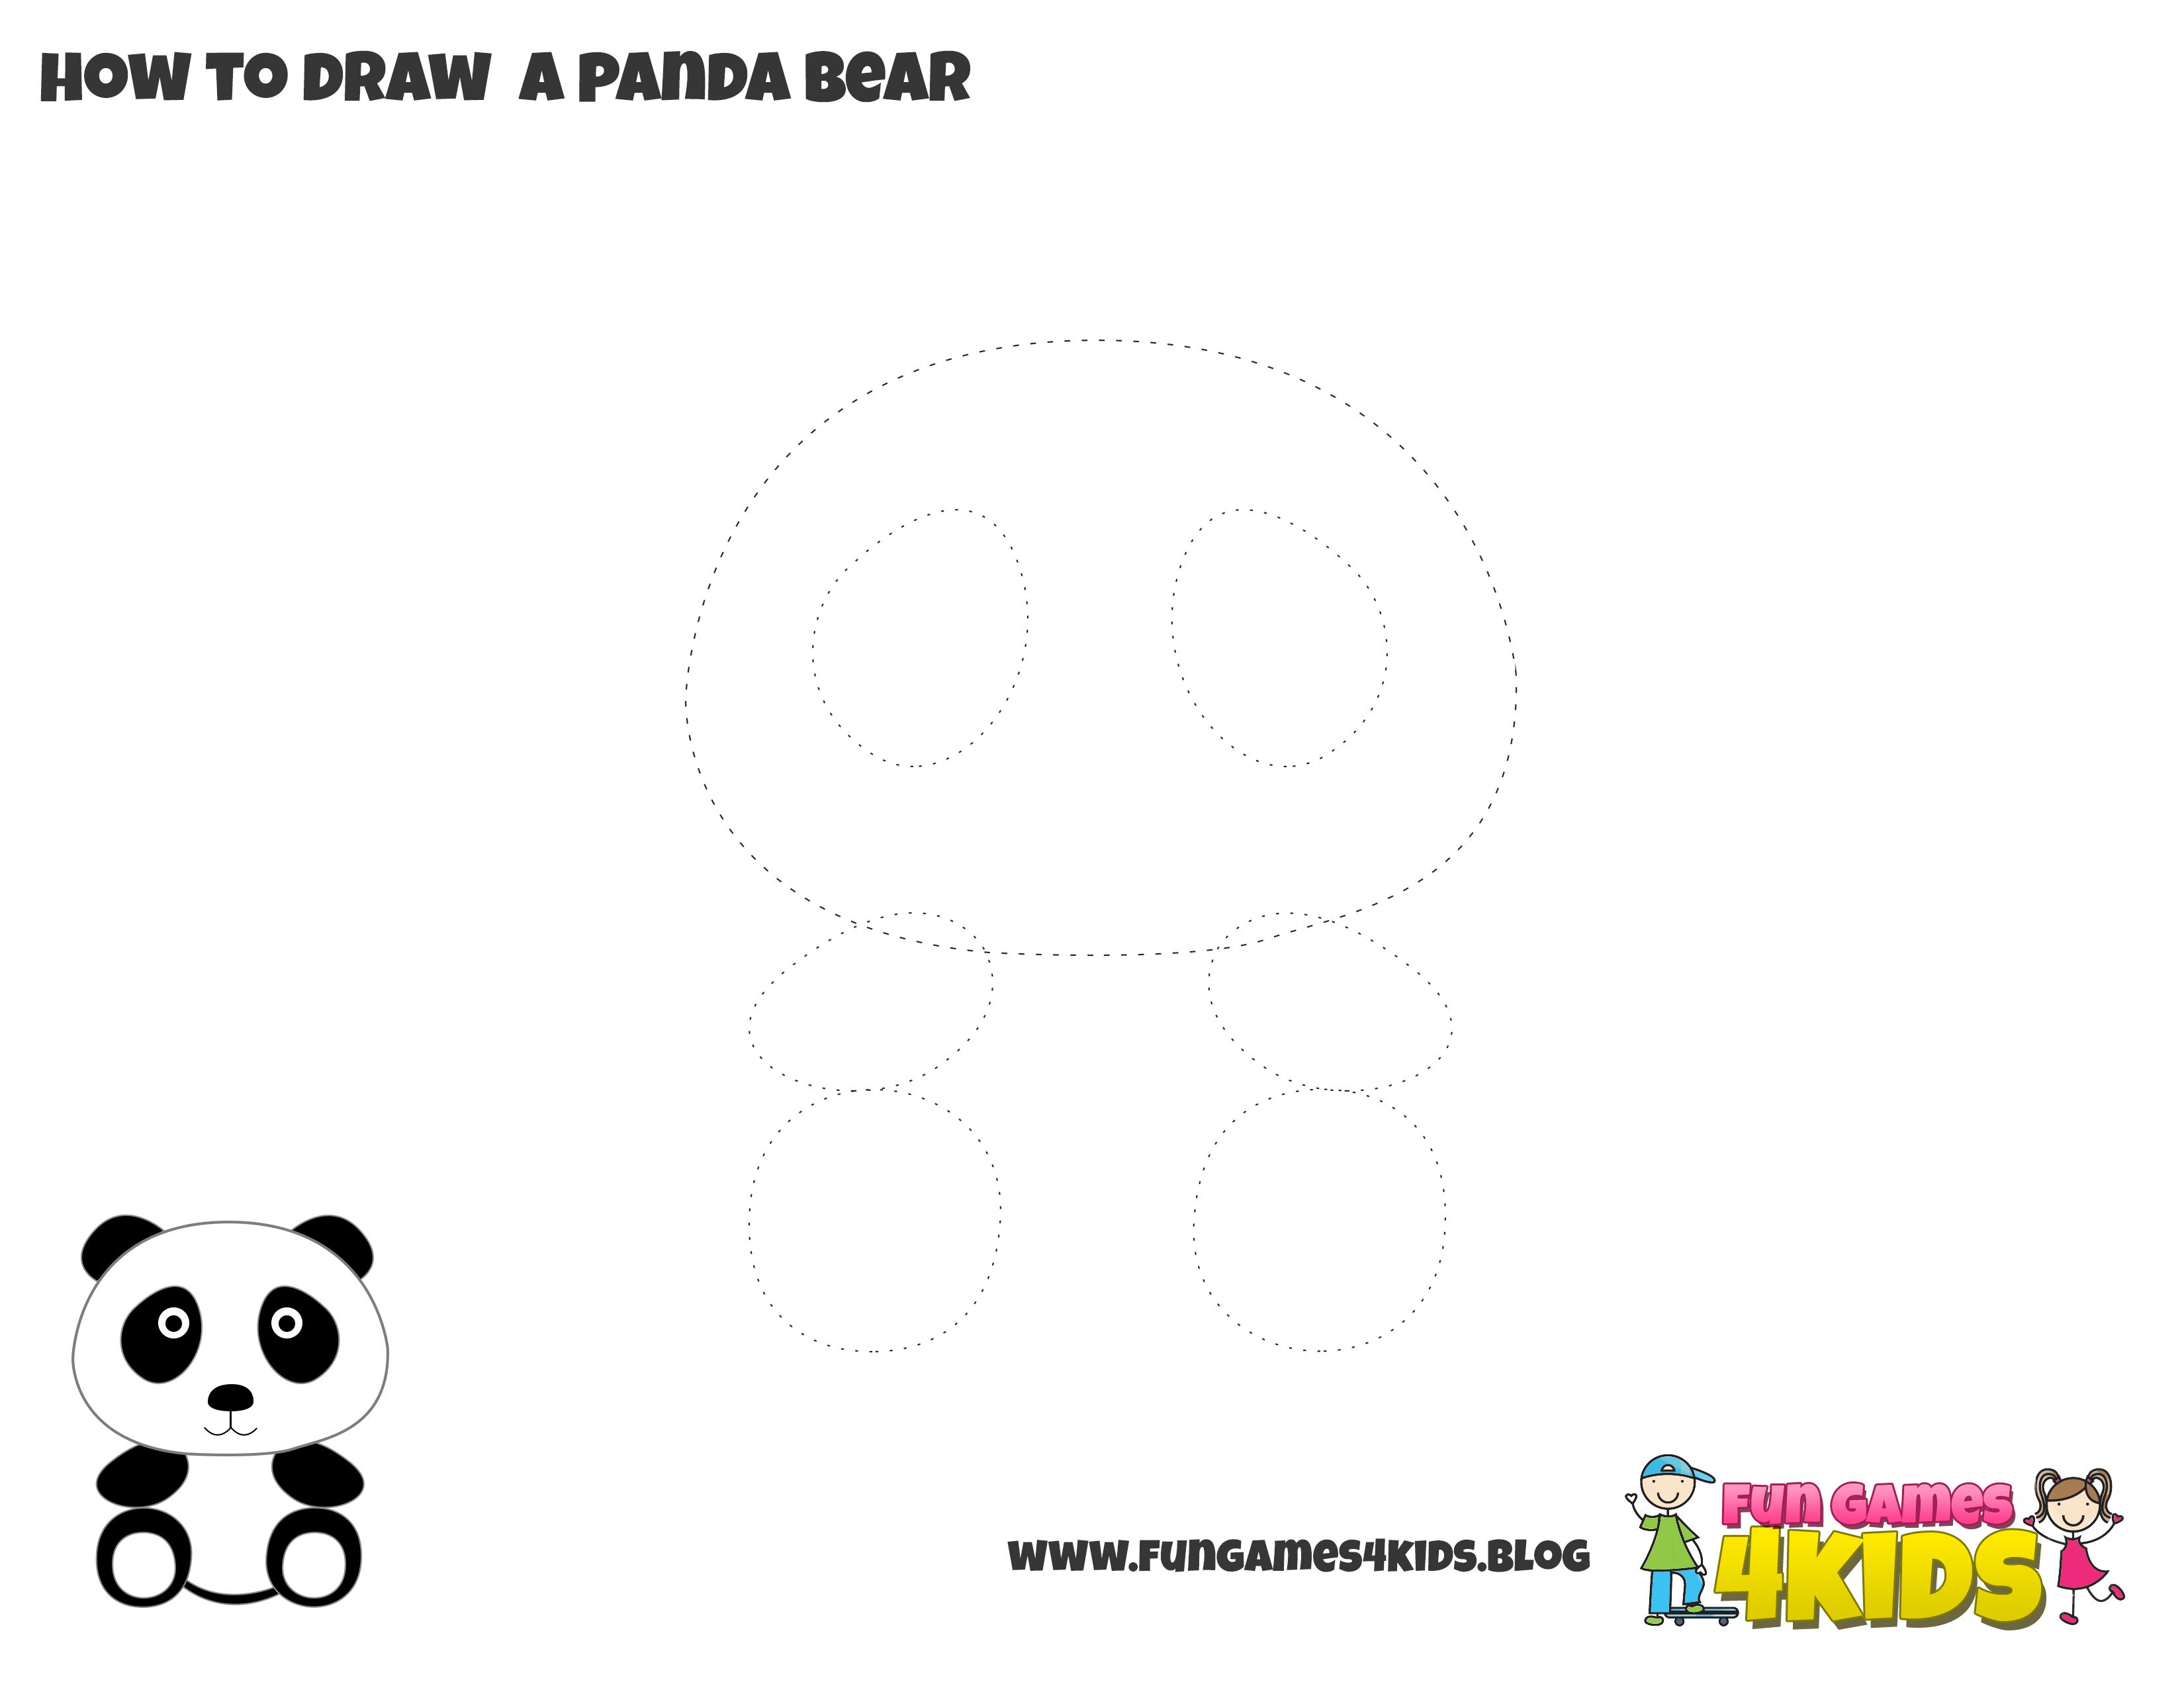 How To Draw Panda From Fungames4kidsub